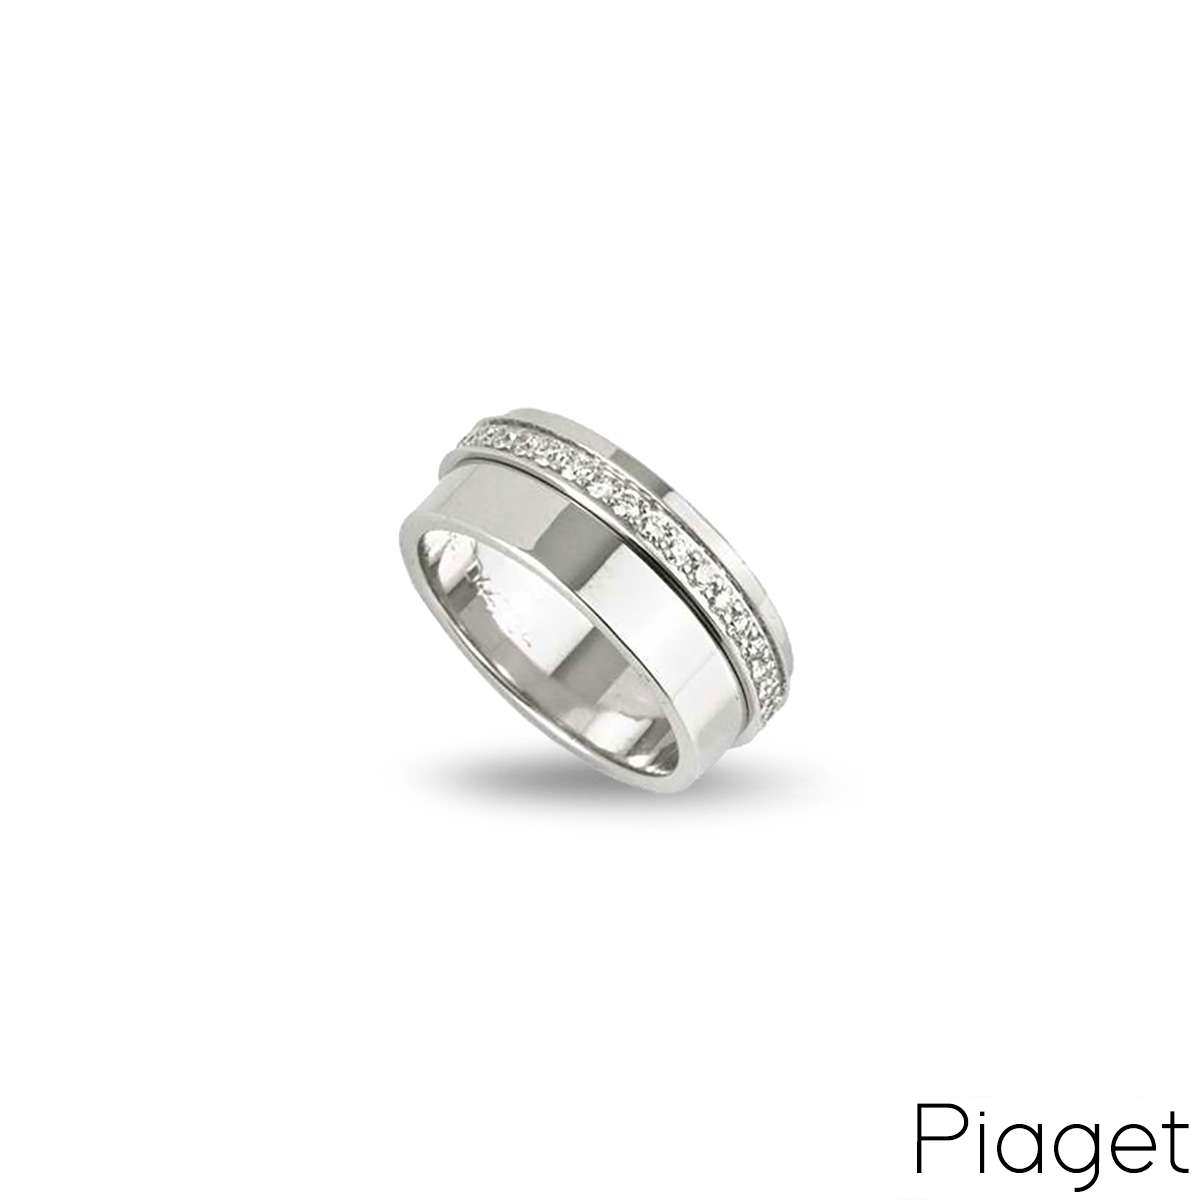 Piaget 18k White Gold Diamond Set Possession Ring B&P G34PX455